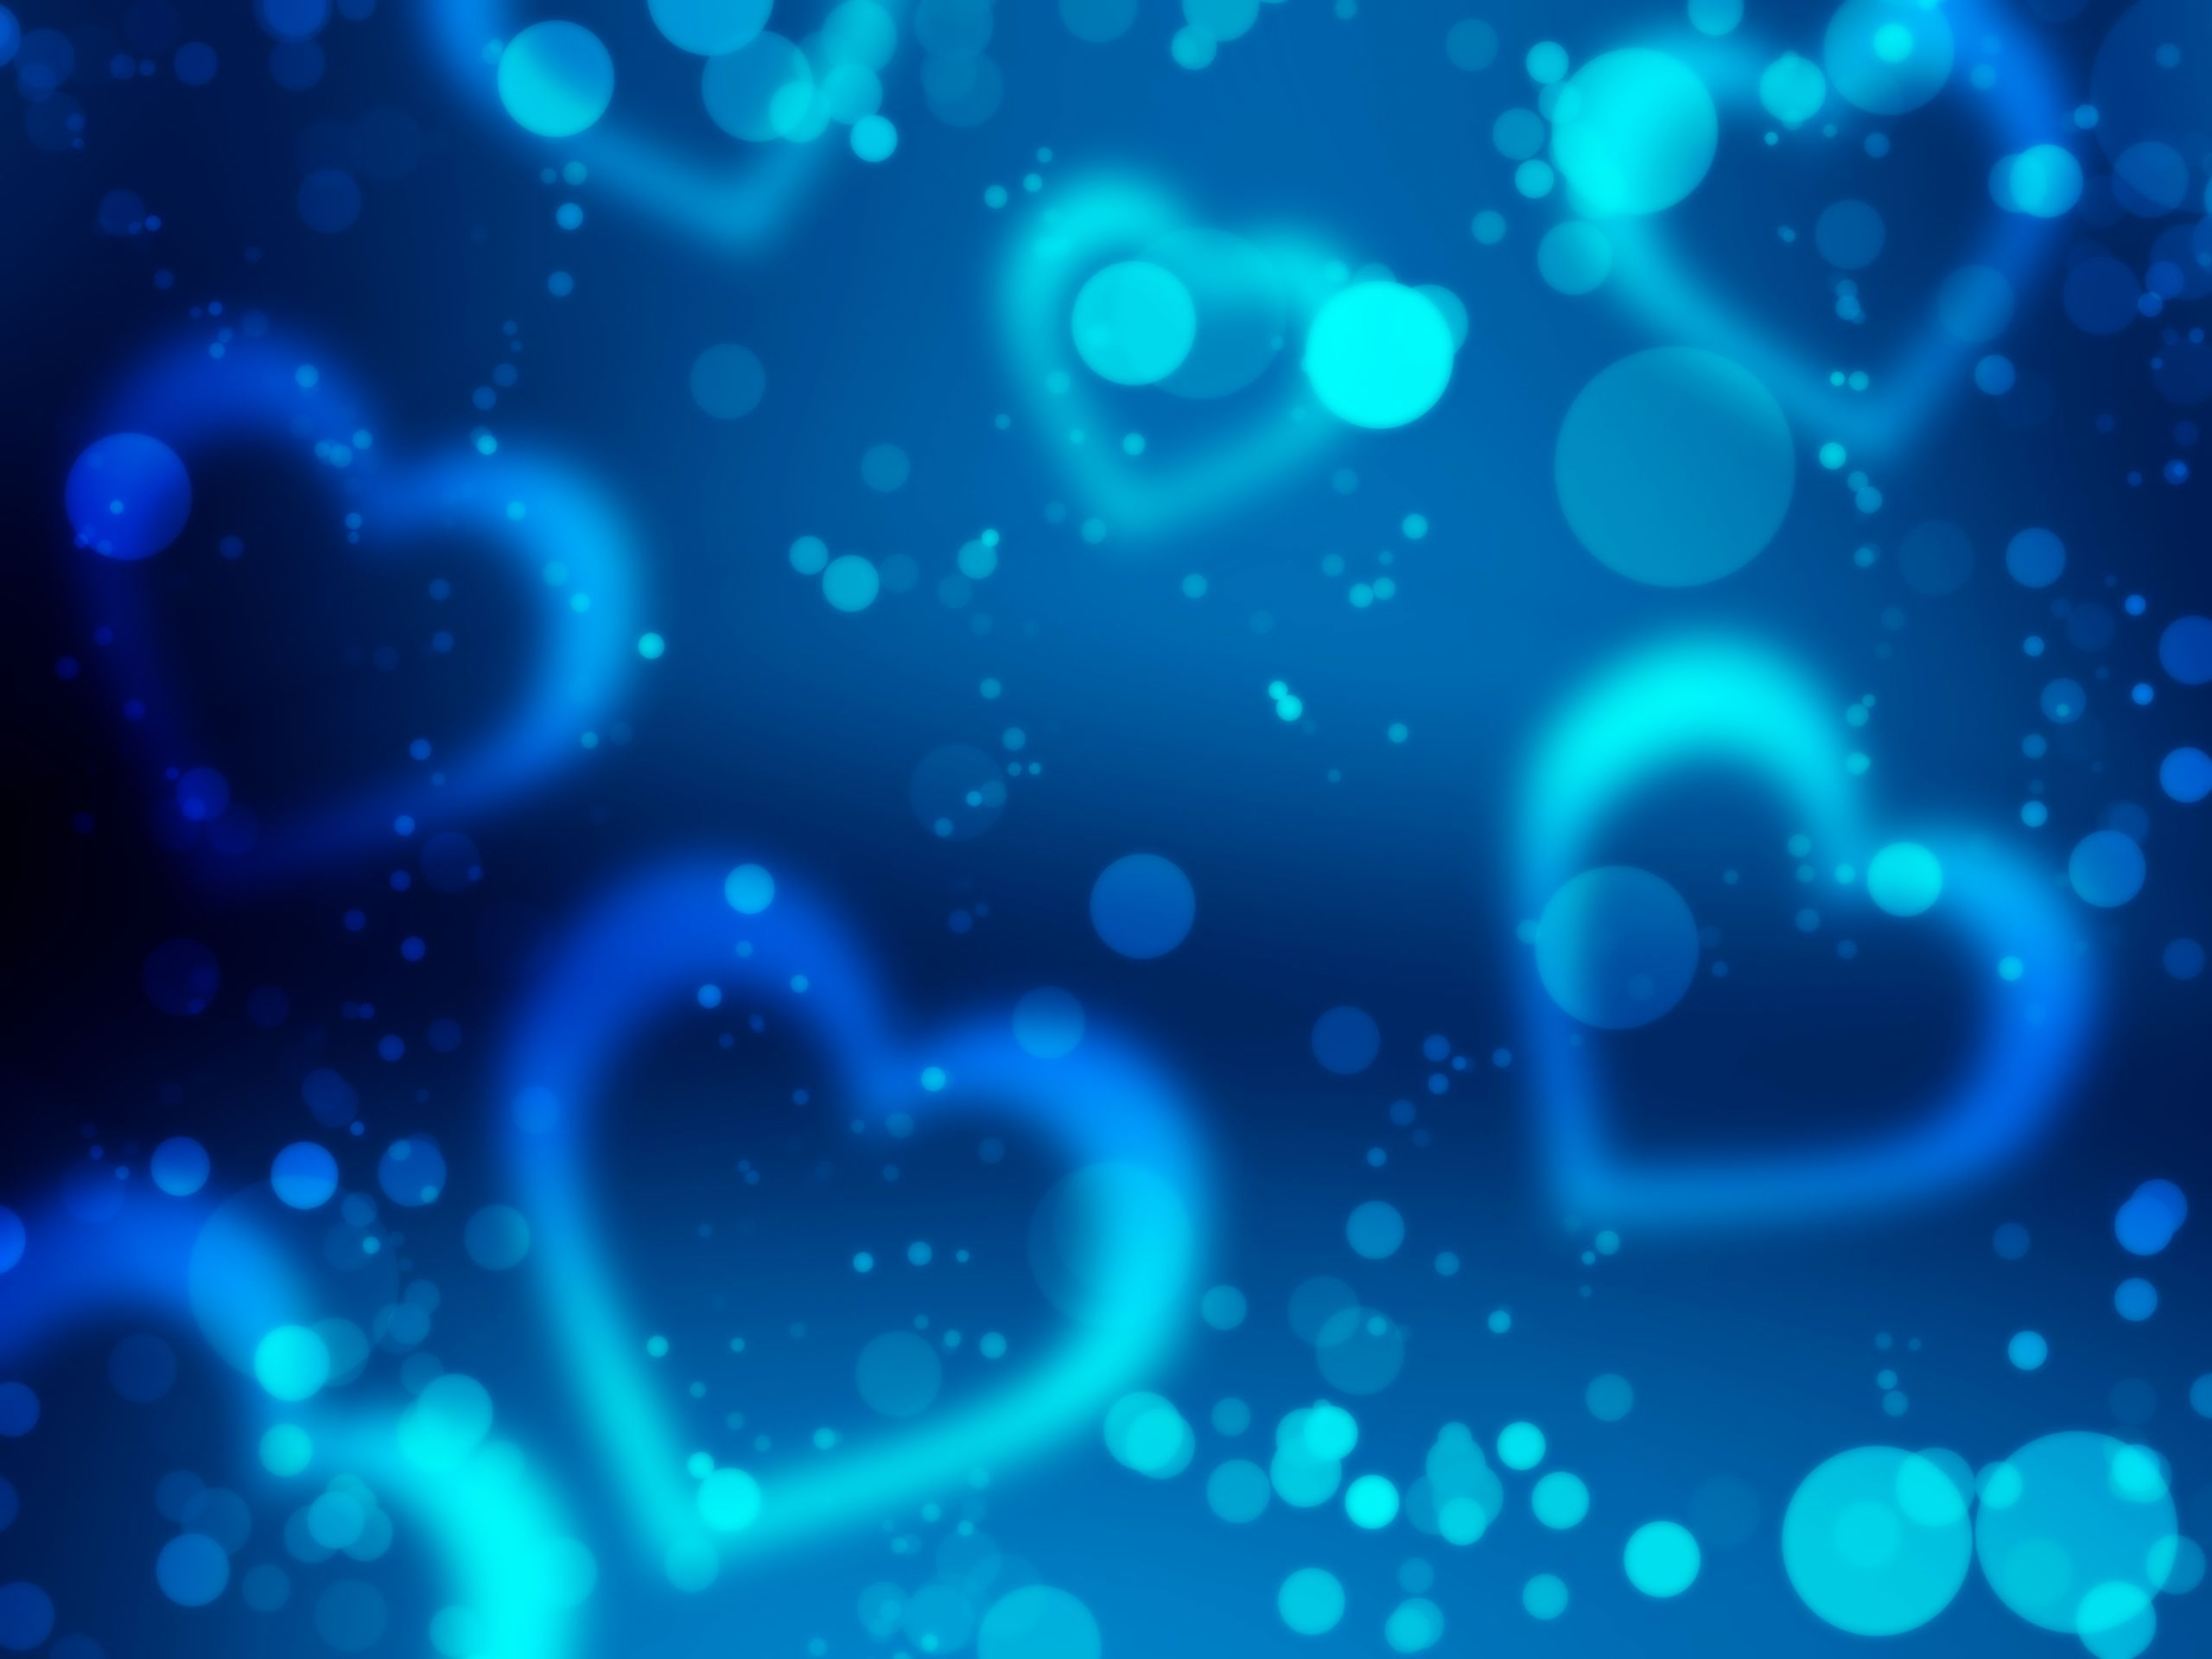 Pin by Patricia Okeife on Blue Things Heart background Glitter 2560x1920